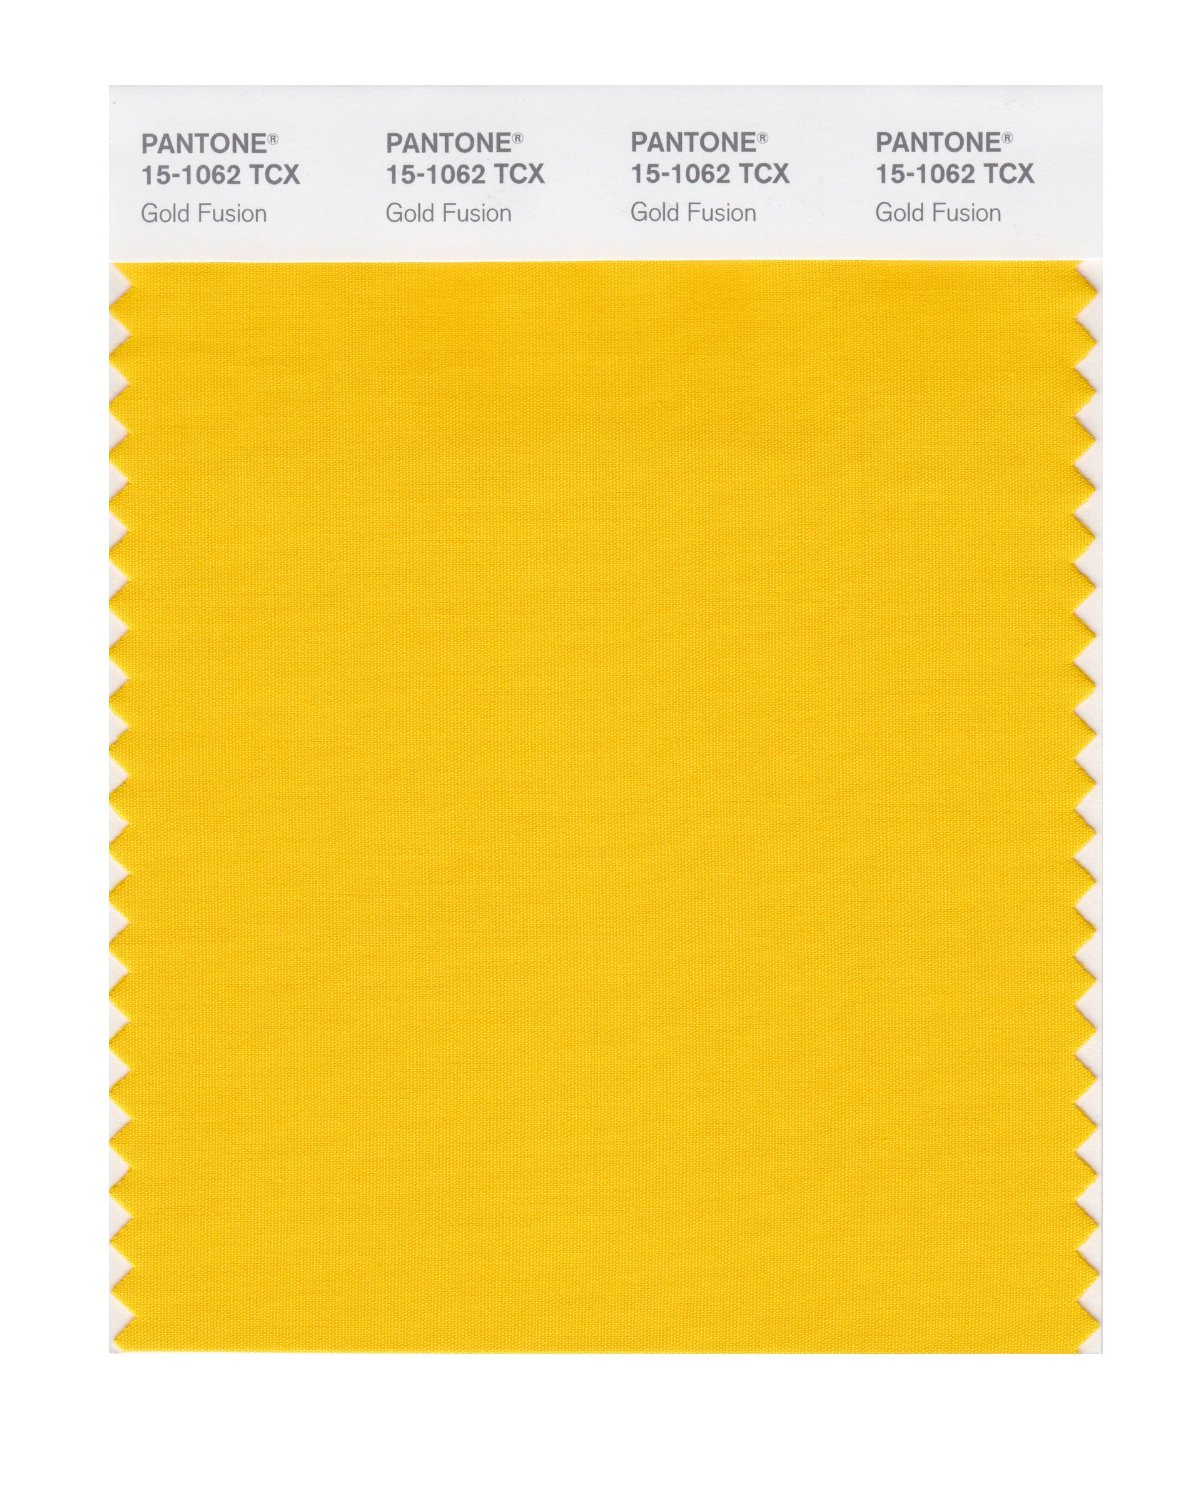 Pantone Smart Swatch 15-1062 Gold Fusion